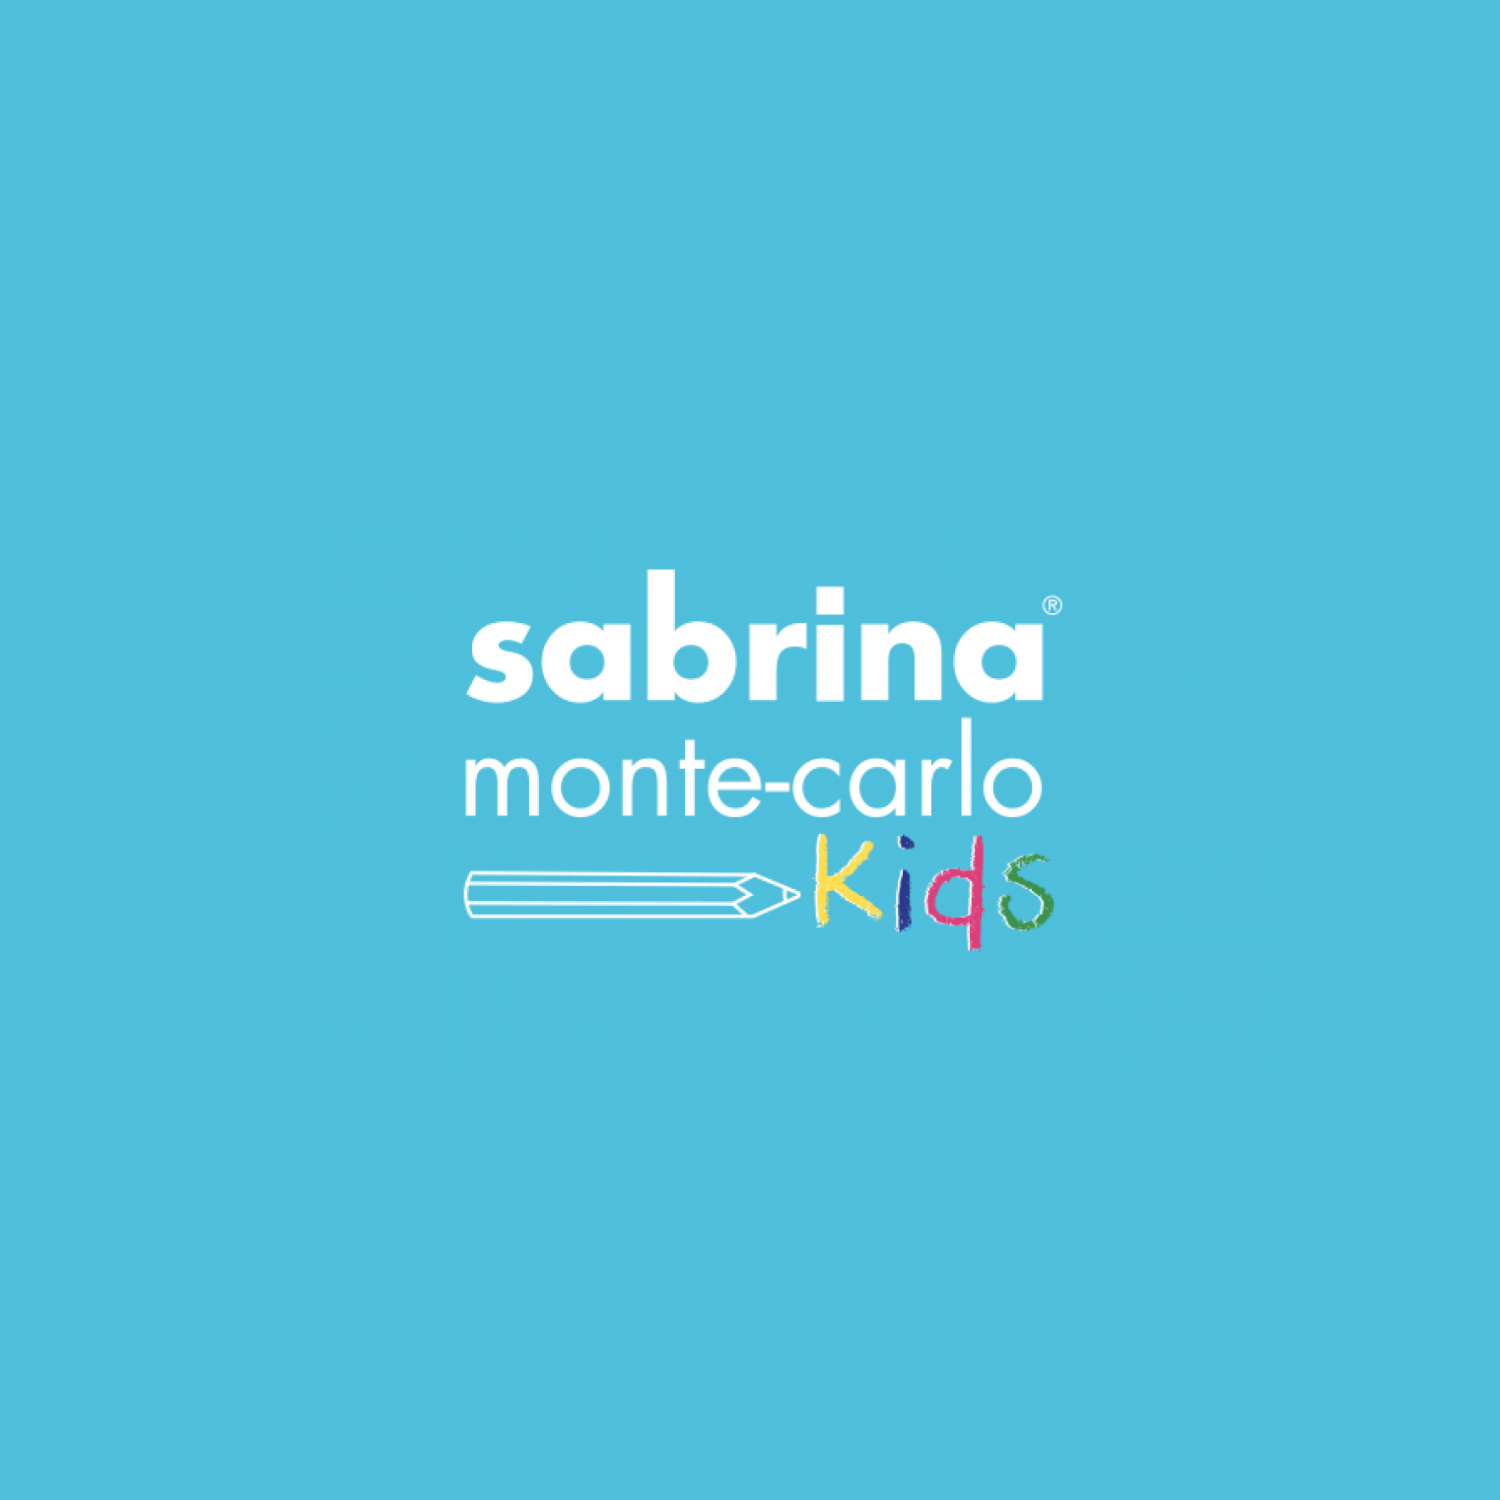 sabrina-kids-monaco-carlo-meubles-decoration